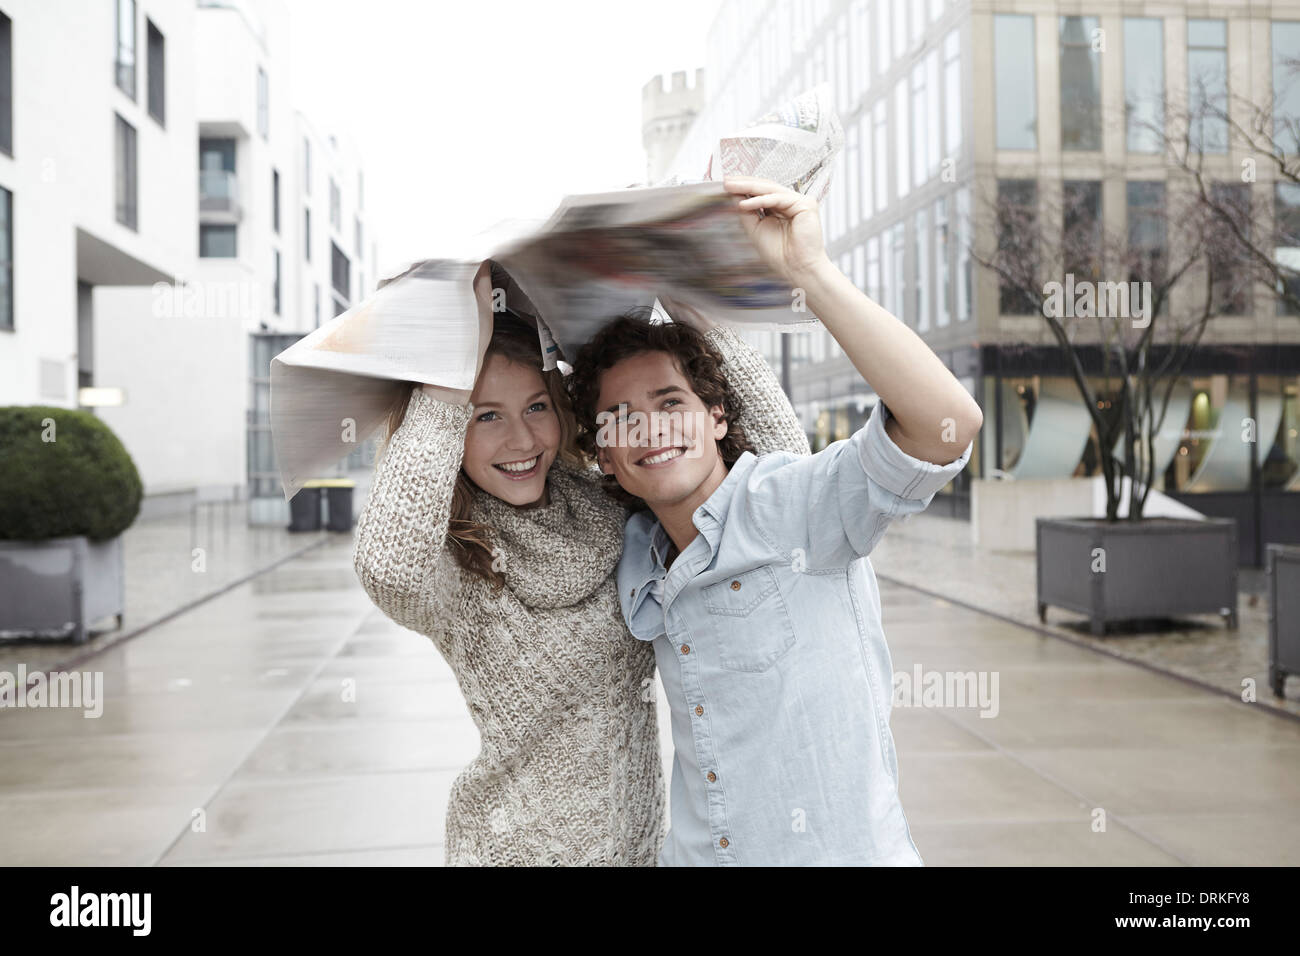 Young couple on the move in the rain - Stock Image